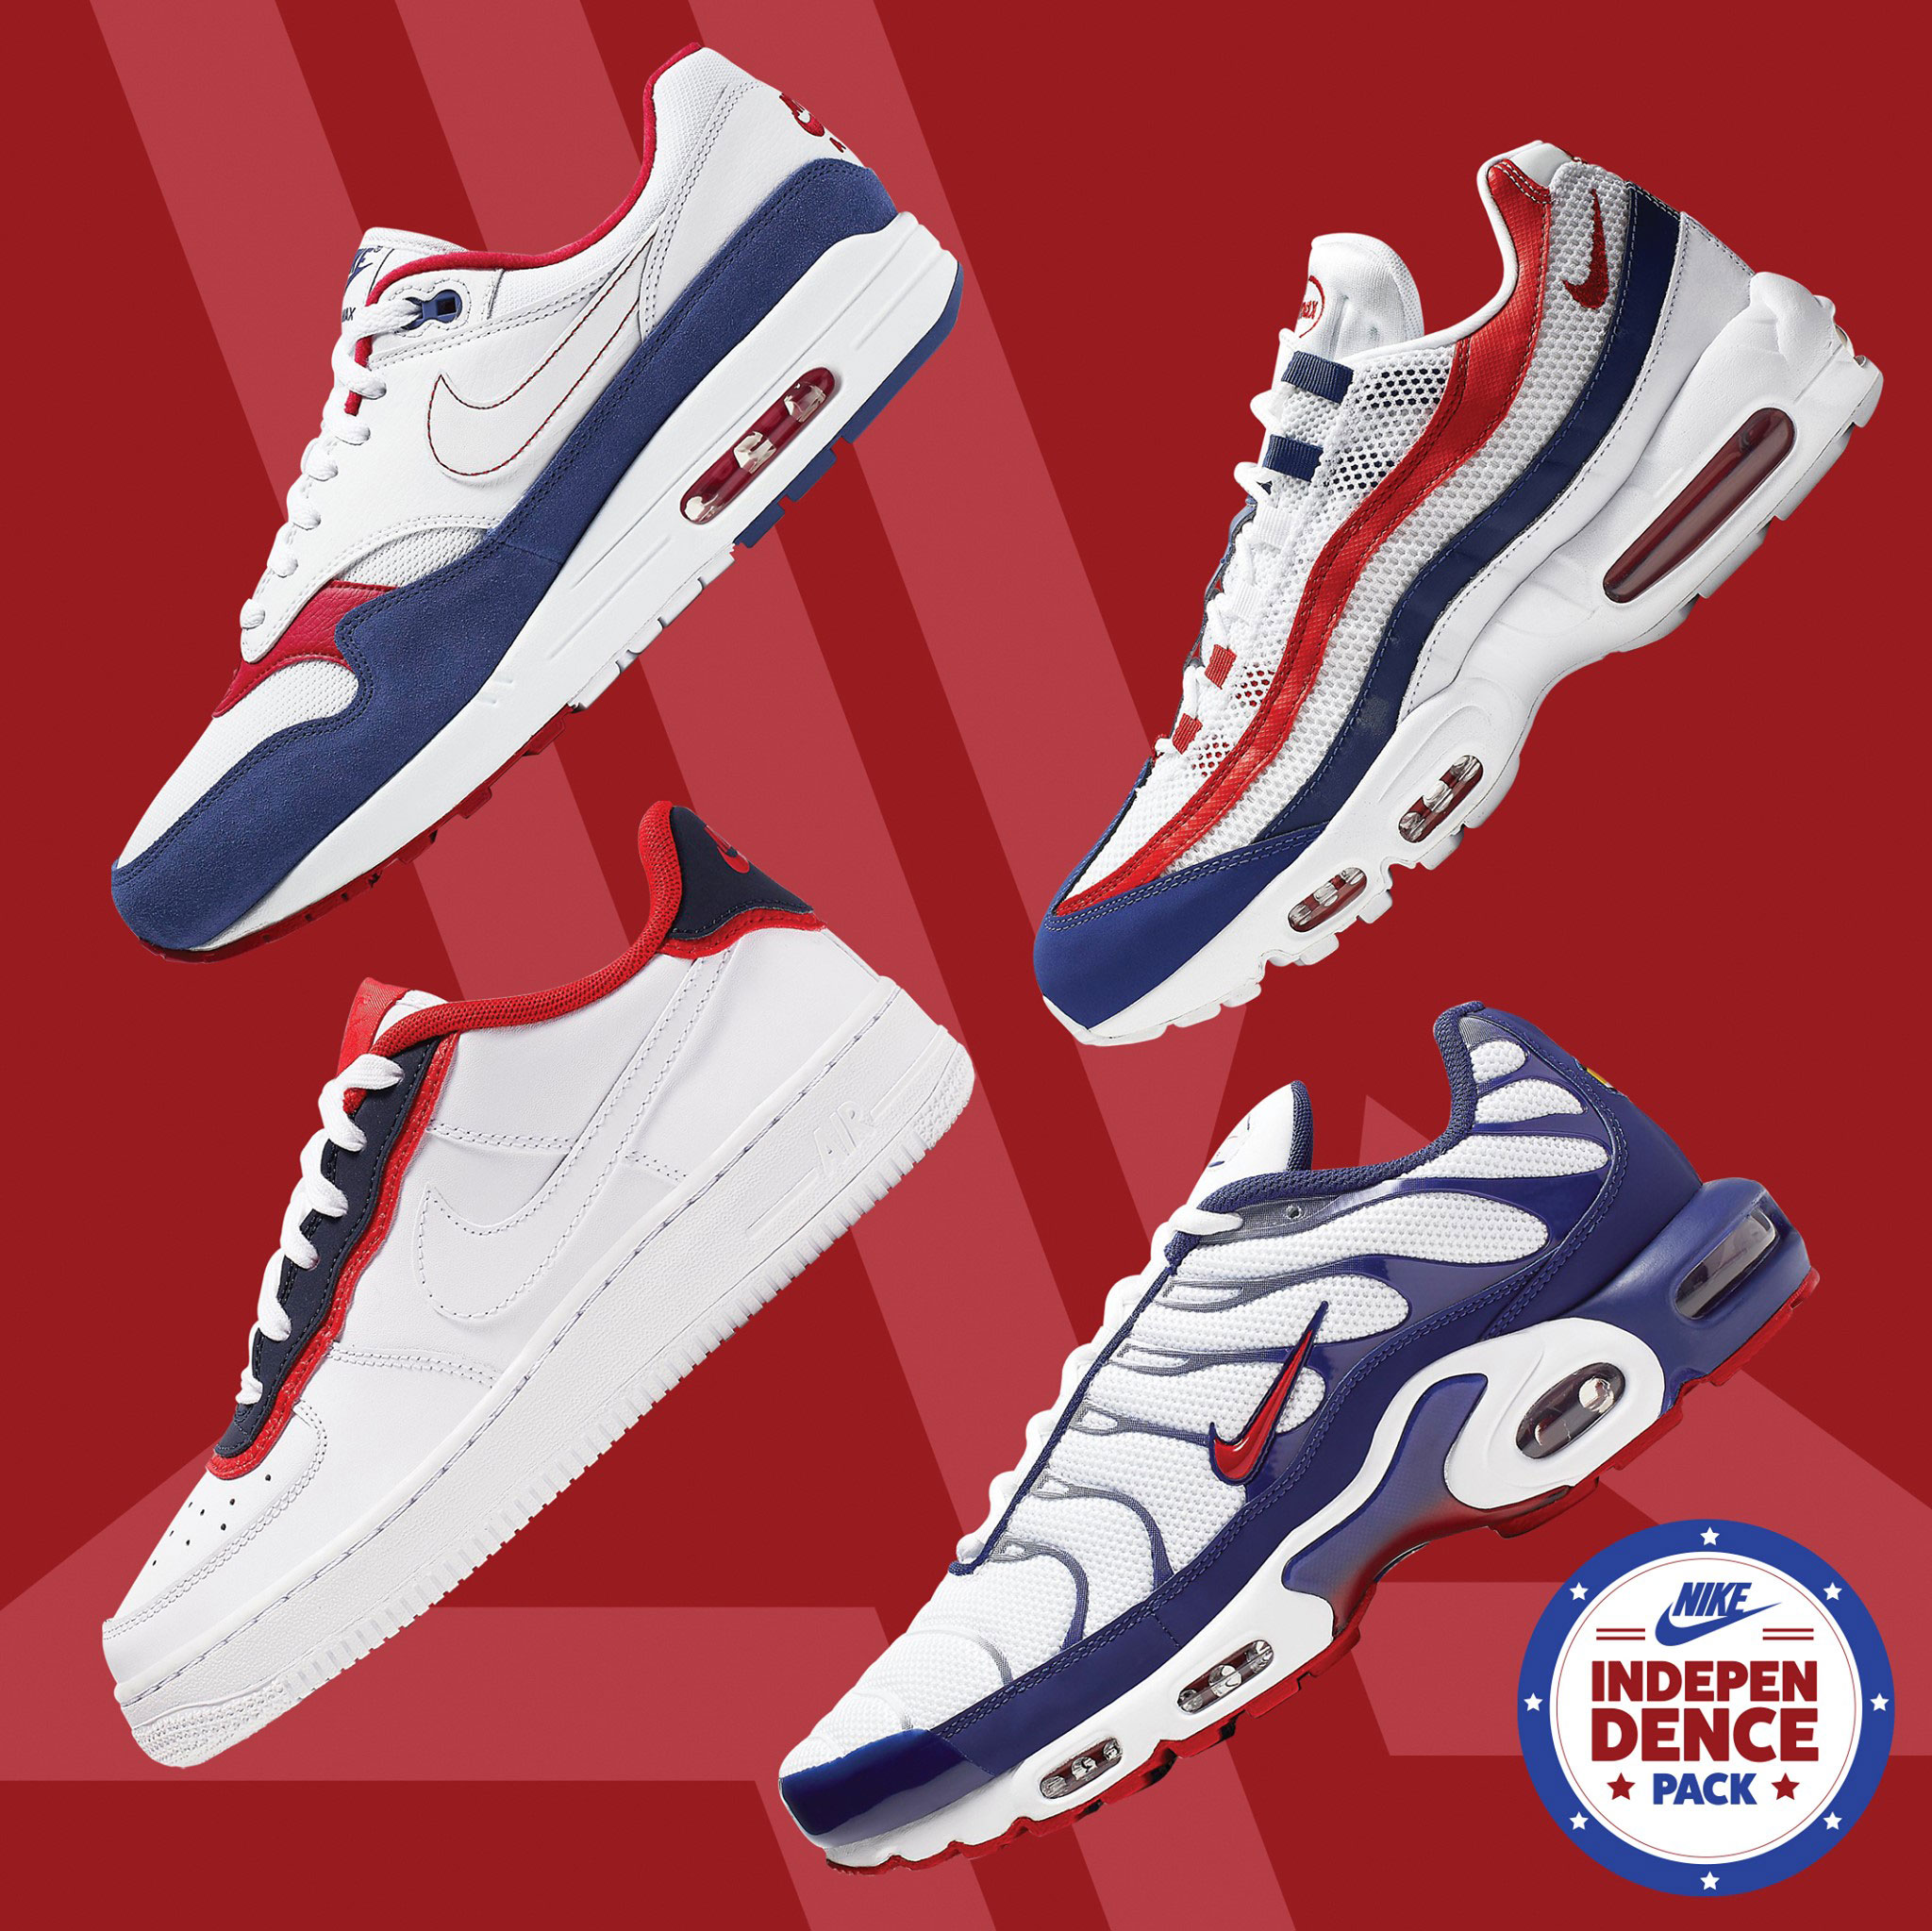 nike-air-max-americana-independence-sneakers